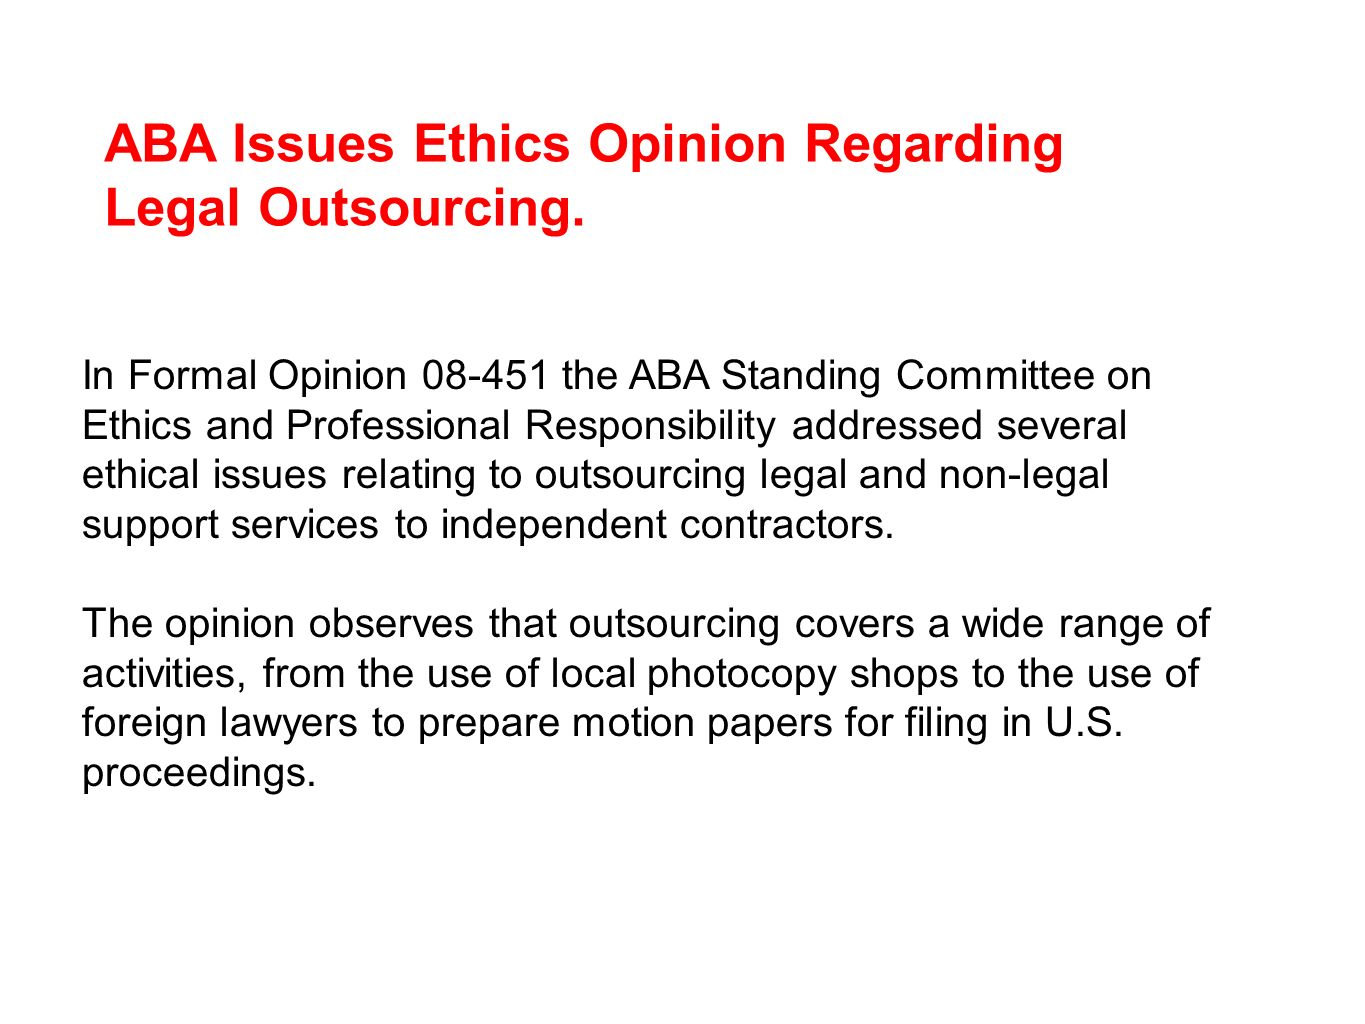 ABA Issues Ethics Opinion Regarding Legal Outsourcing.